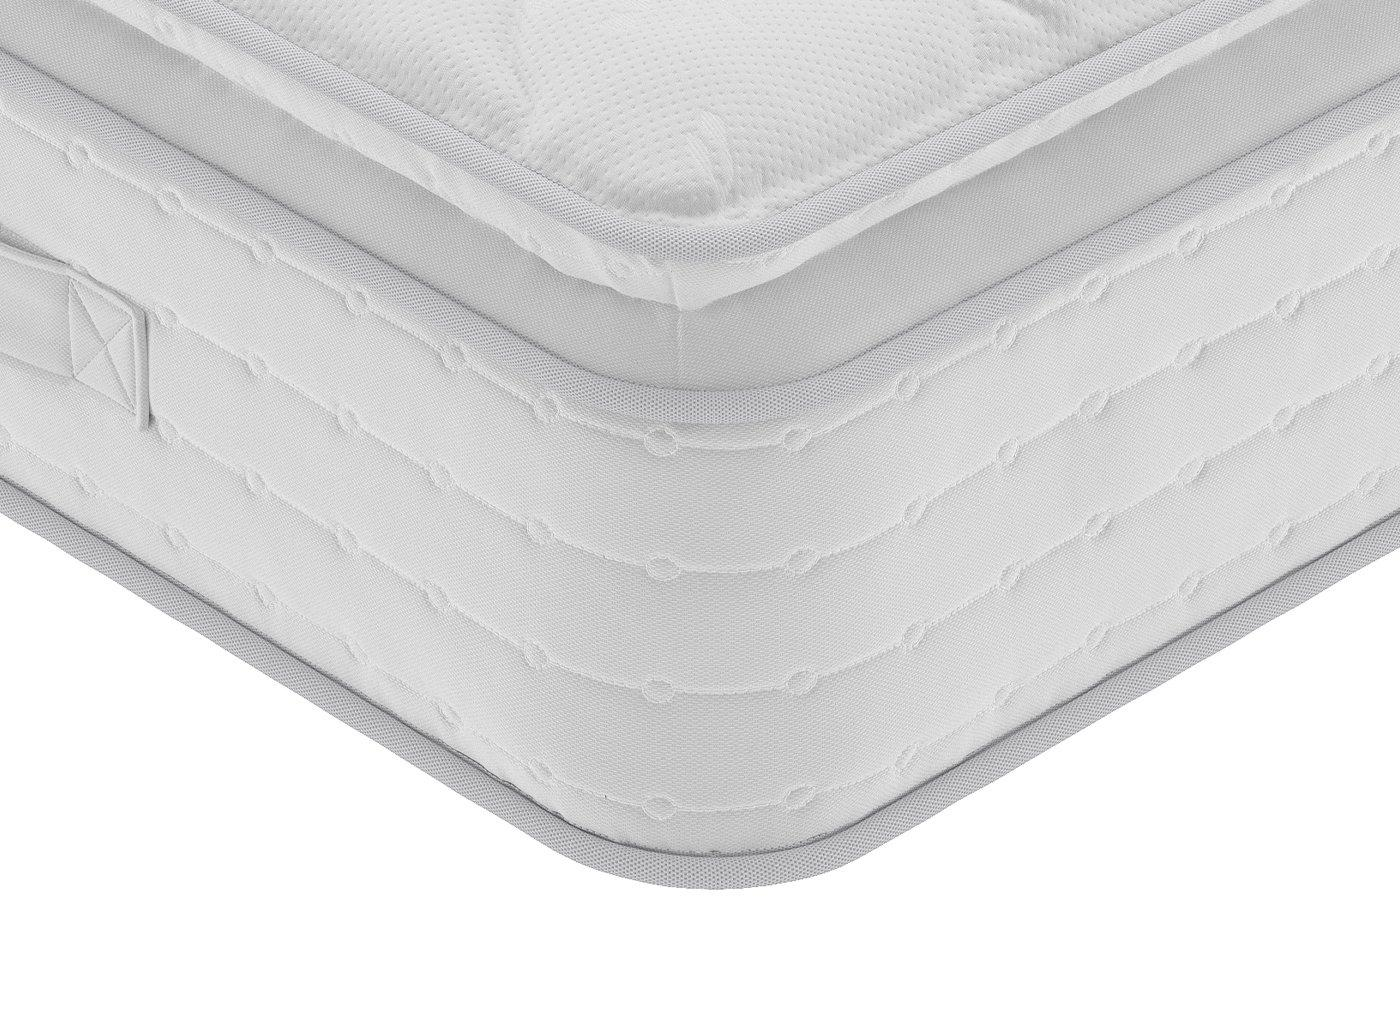 Grayson 1000 D Mattress 5'0 King